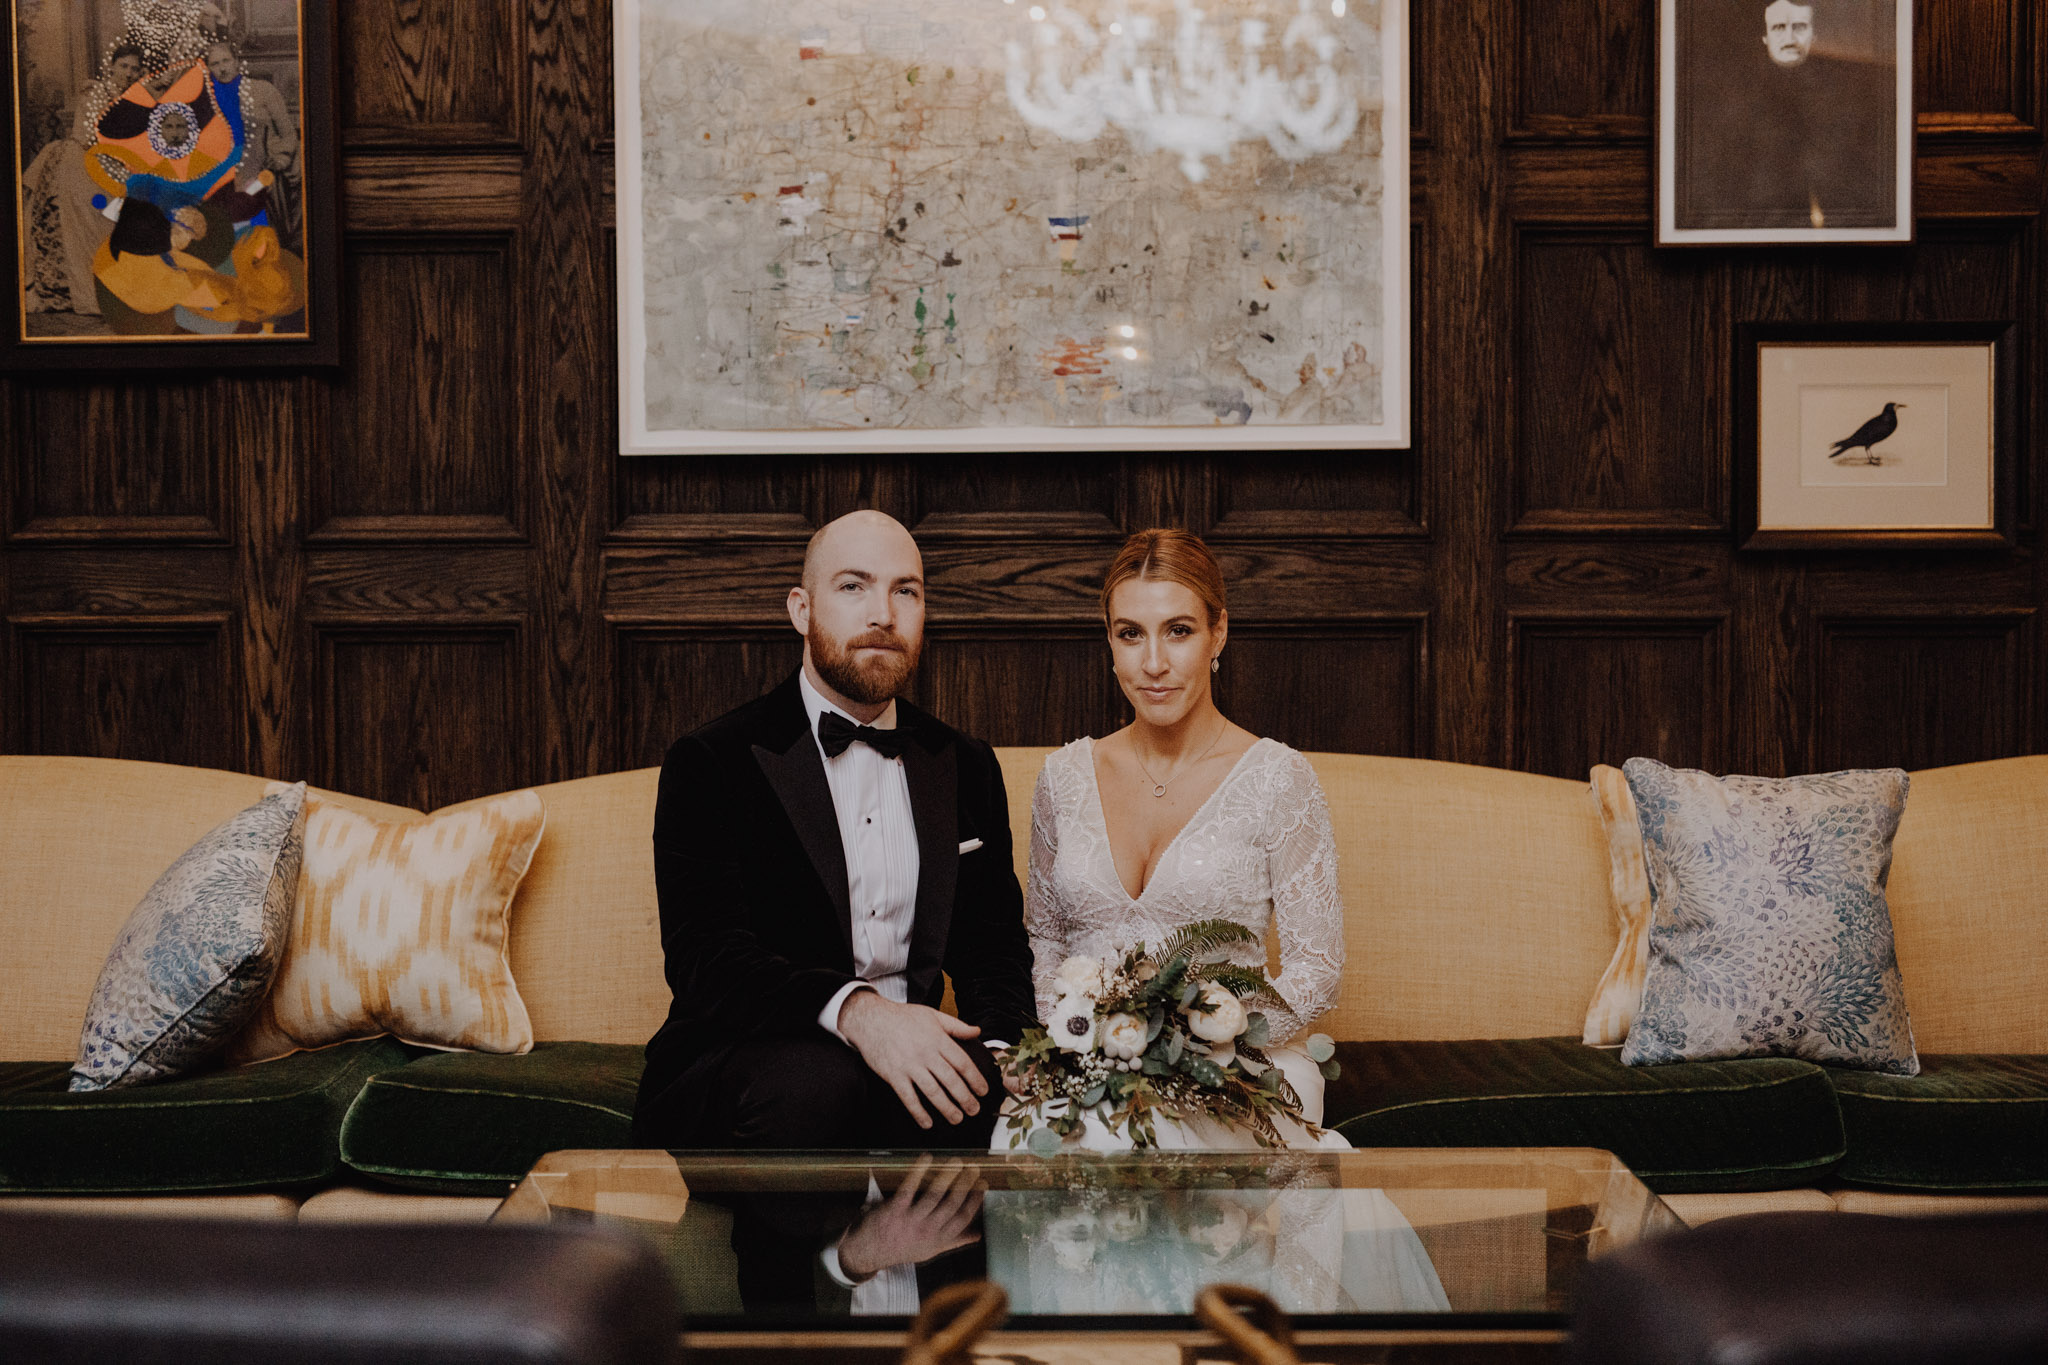 Downtown NYC Wedding - The Beekman Hotel - portraits in the lounge